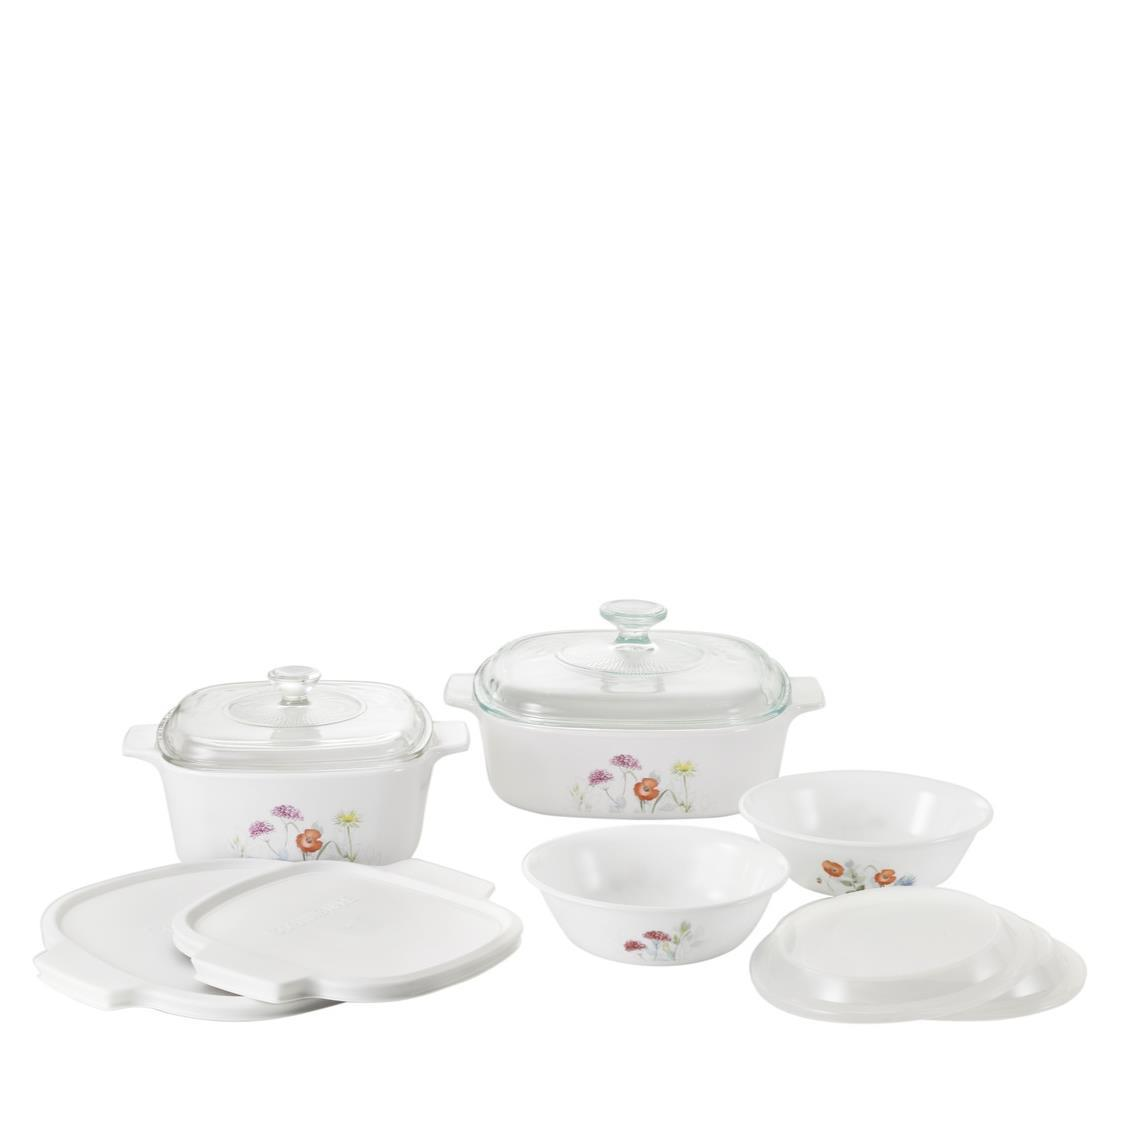 10pc Set Daisy Field